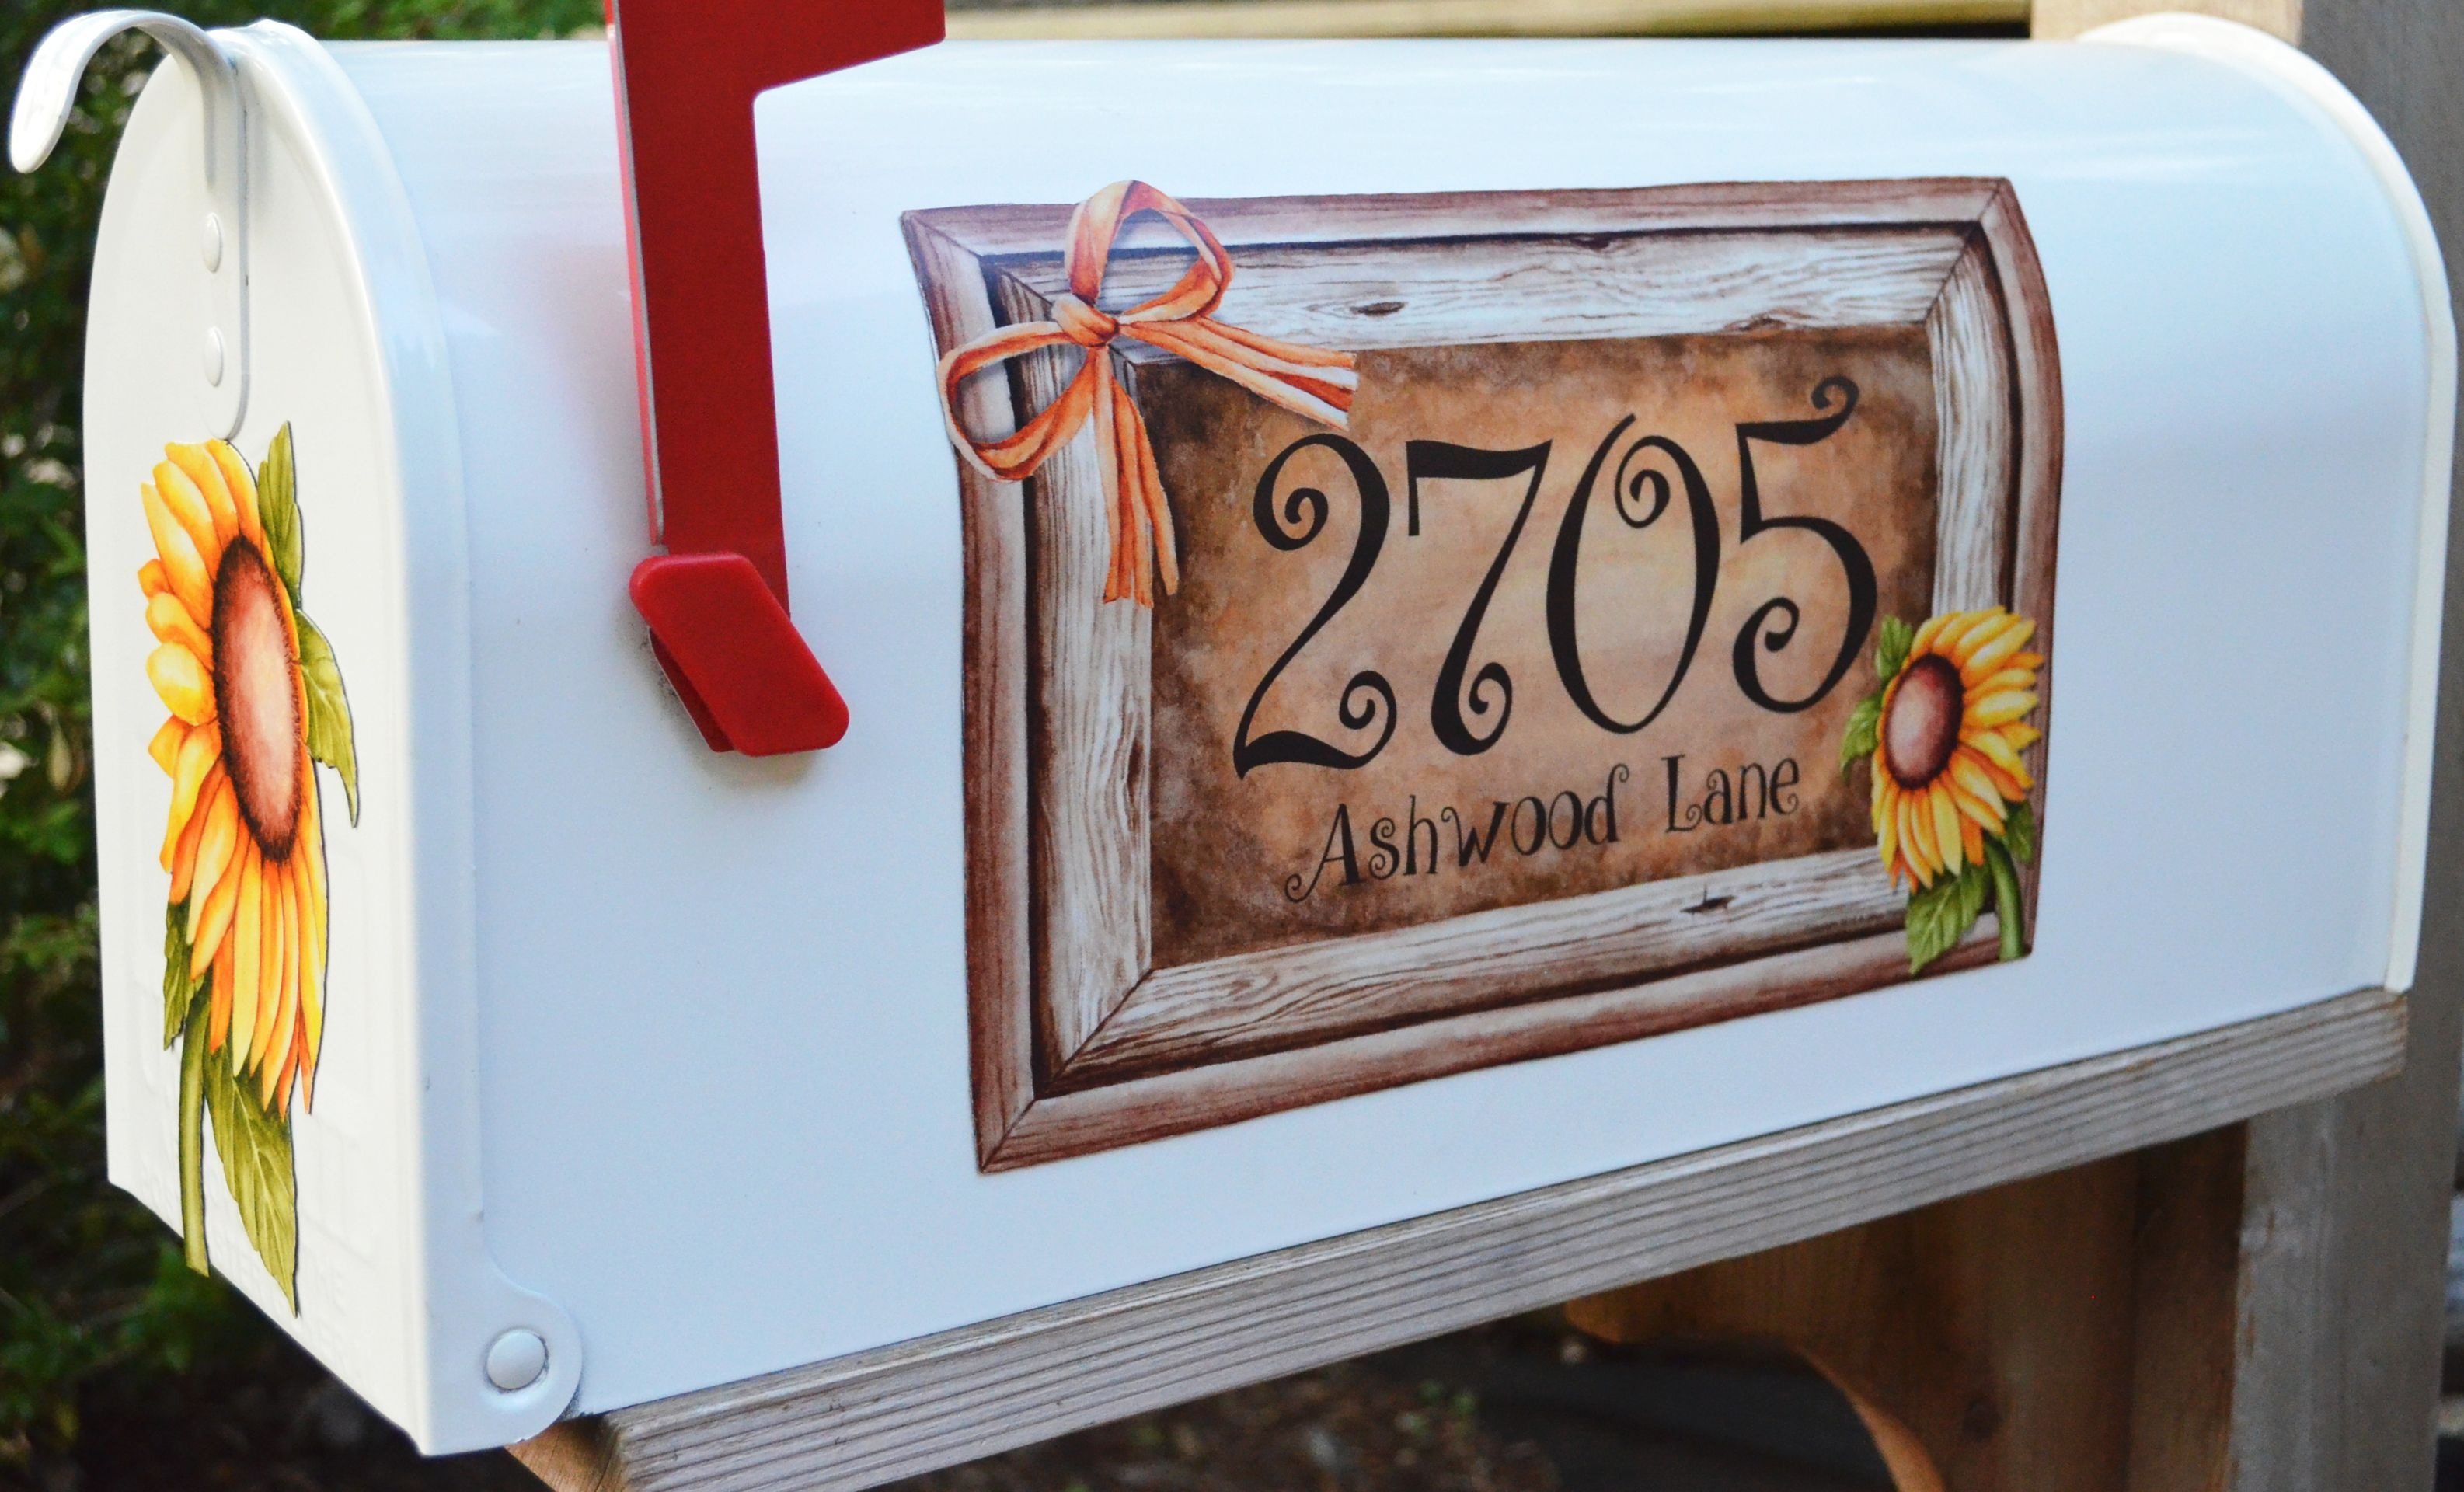 Custom Magnetic Mailbox Cover Personalized With Last Name Mailbox Covers Bonsaipaisajismo Hardware